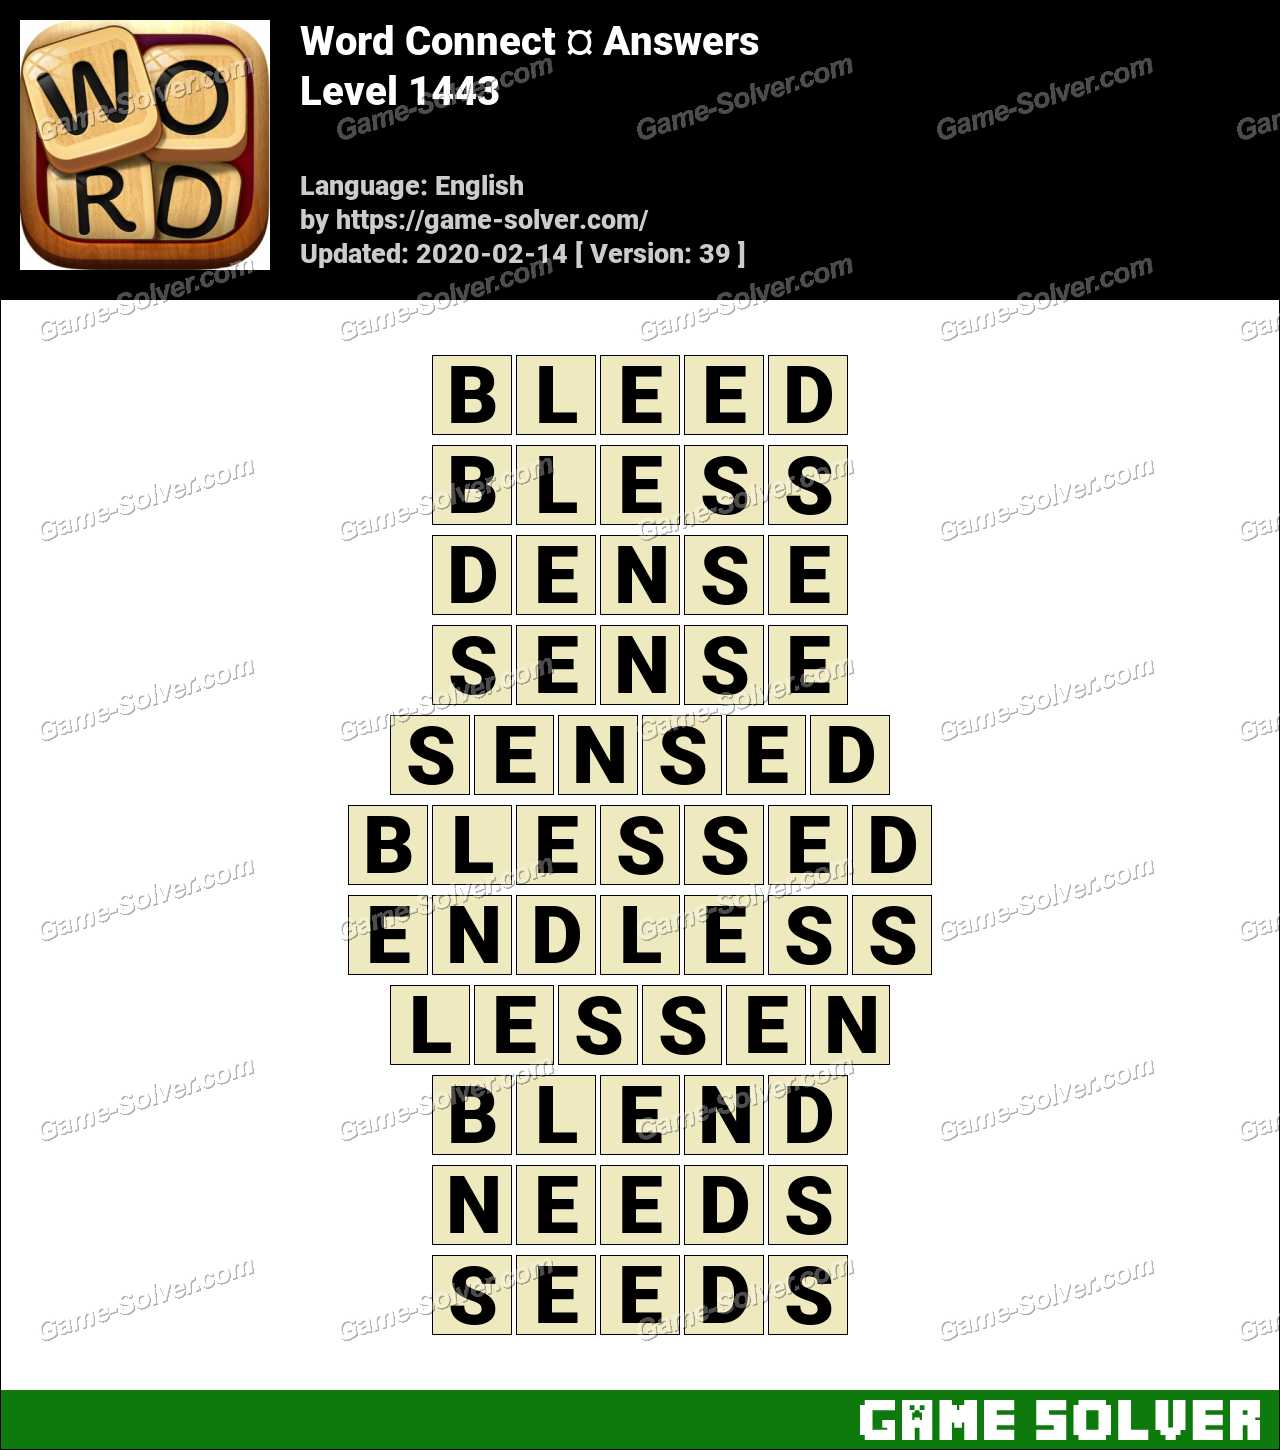 Word Connect Level 1443 Answers